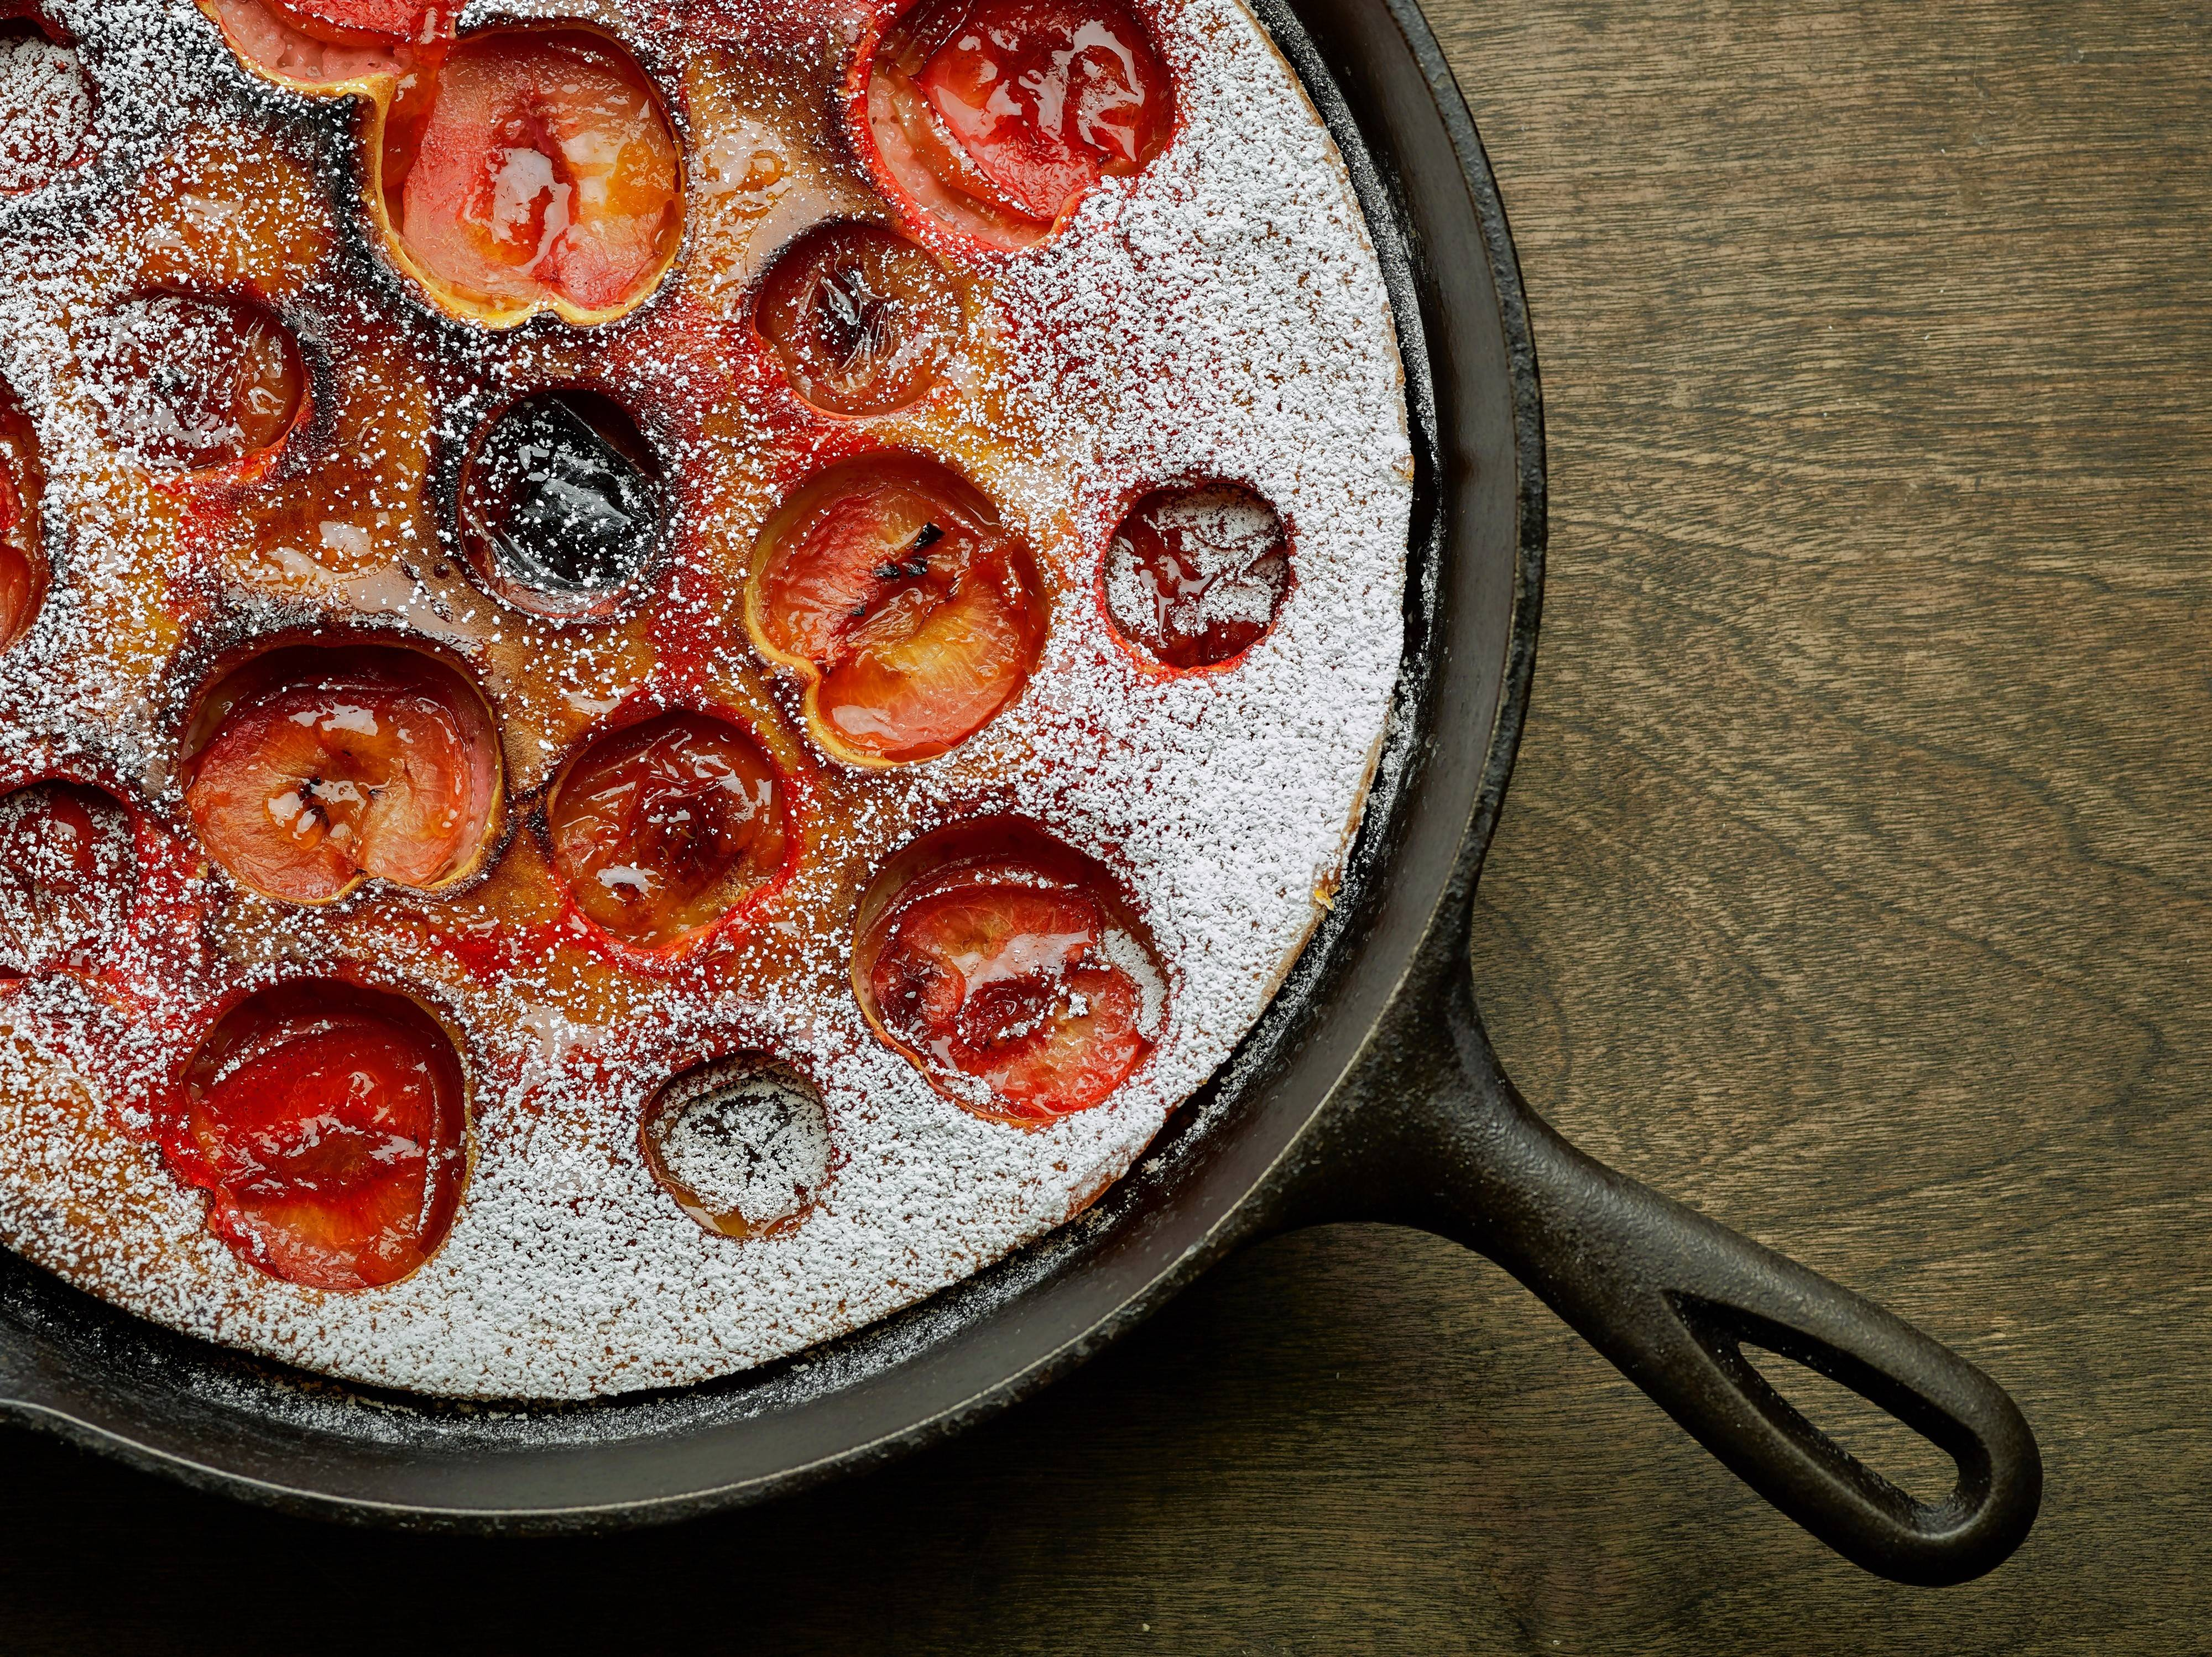 Phil Mansfield for The Culinary Institute of America, Associated Press Stone fruits, like peaches, apricots, and plums, are classic clafoutis ingredients as in the plum clafoutis made at the Culinary Institute of Arts in Hyde Park, New York.